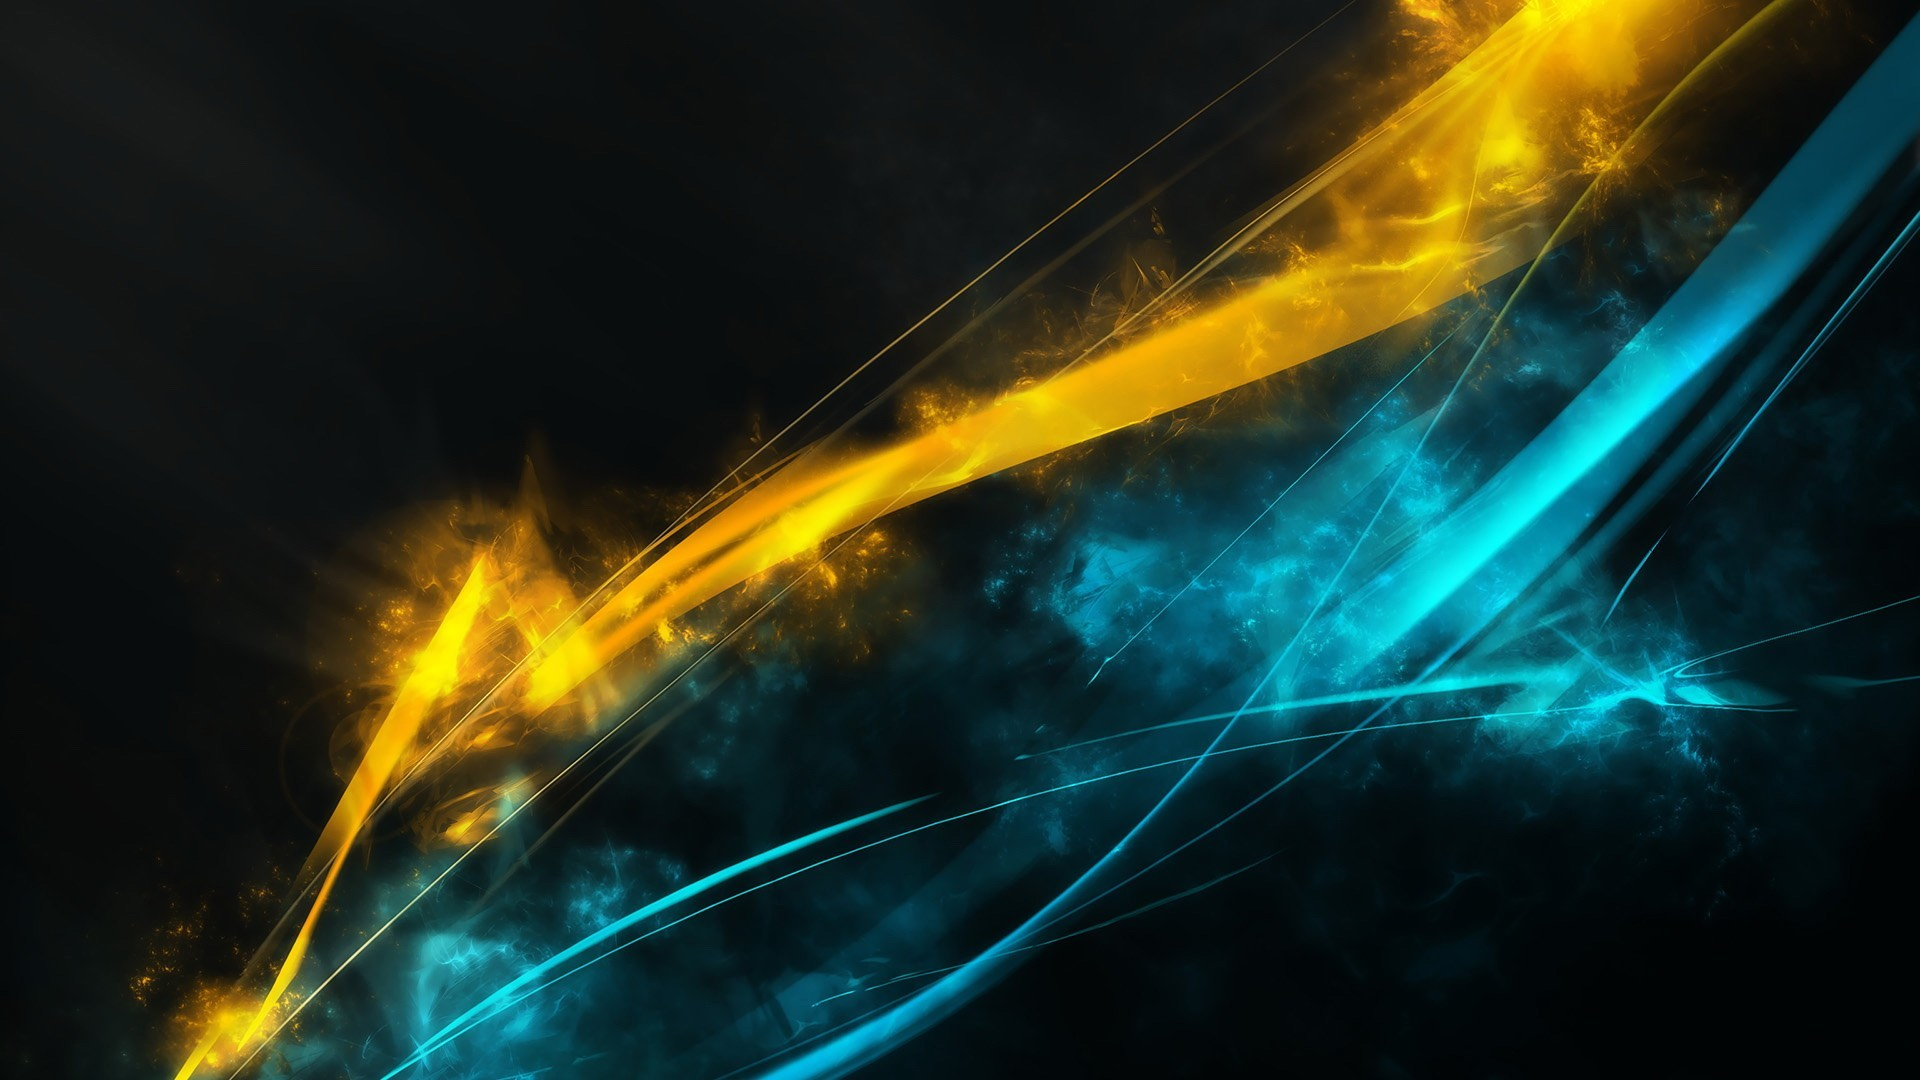 hd-wallpapers-1920×1080-abstract-4